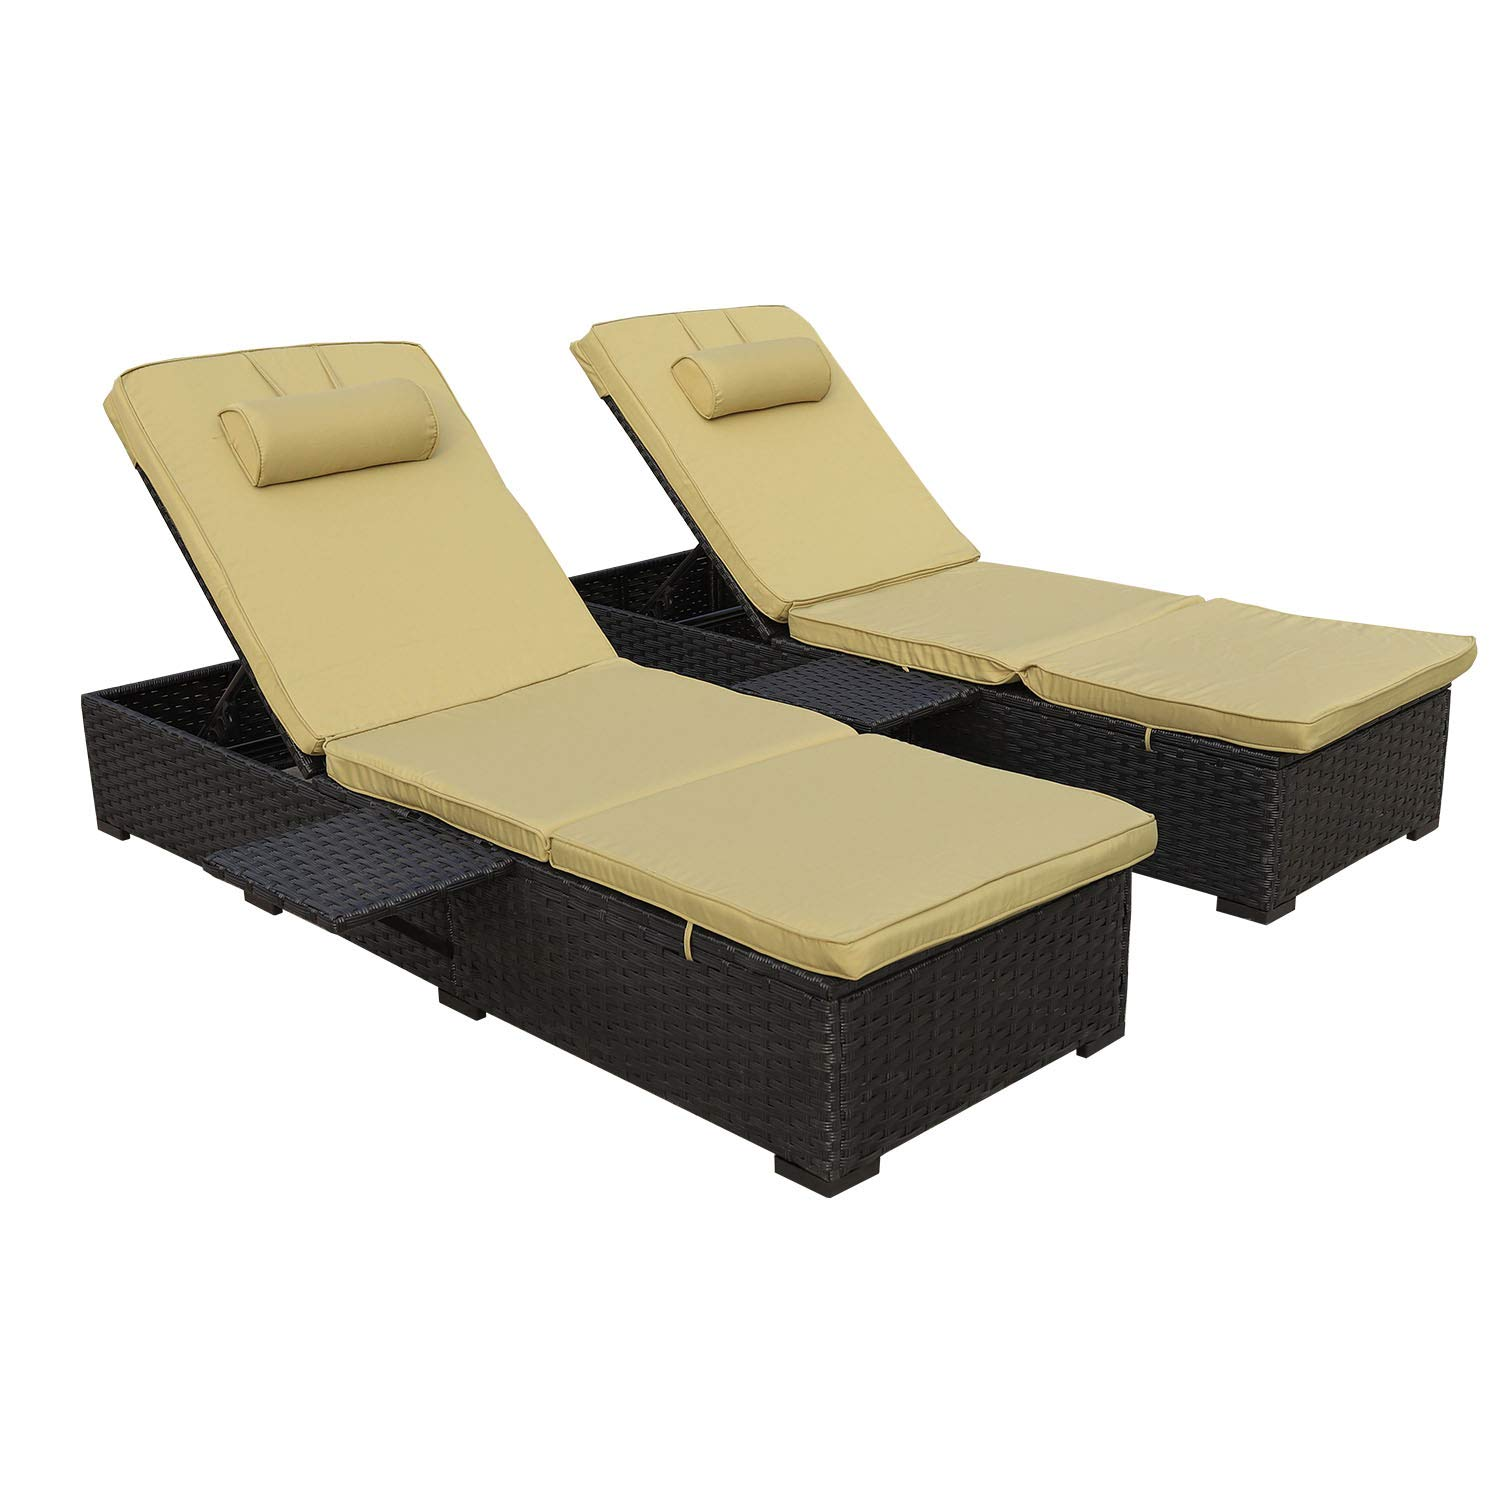 Outdoor PE Wicker Chaise Lounge - 2 Piece Patio Black Rattan Reclining Chair Furniture Set Beach Pool Adjustable Backrest Recliners with Olive Green Cushions by WAROOM